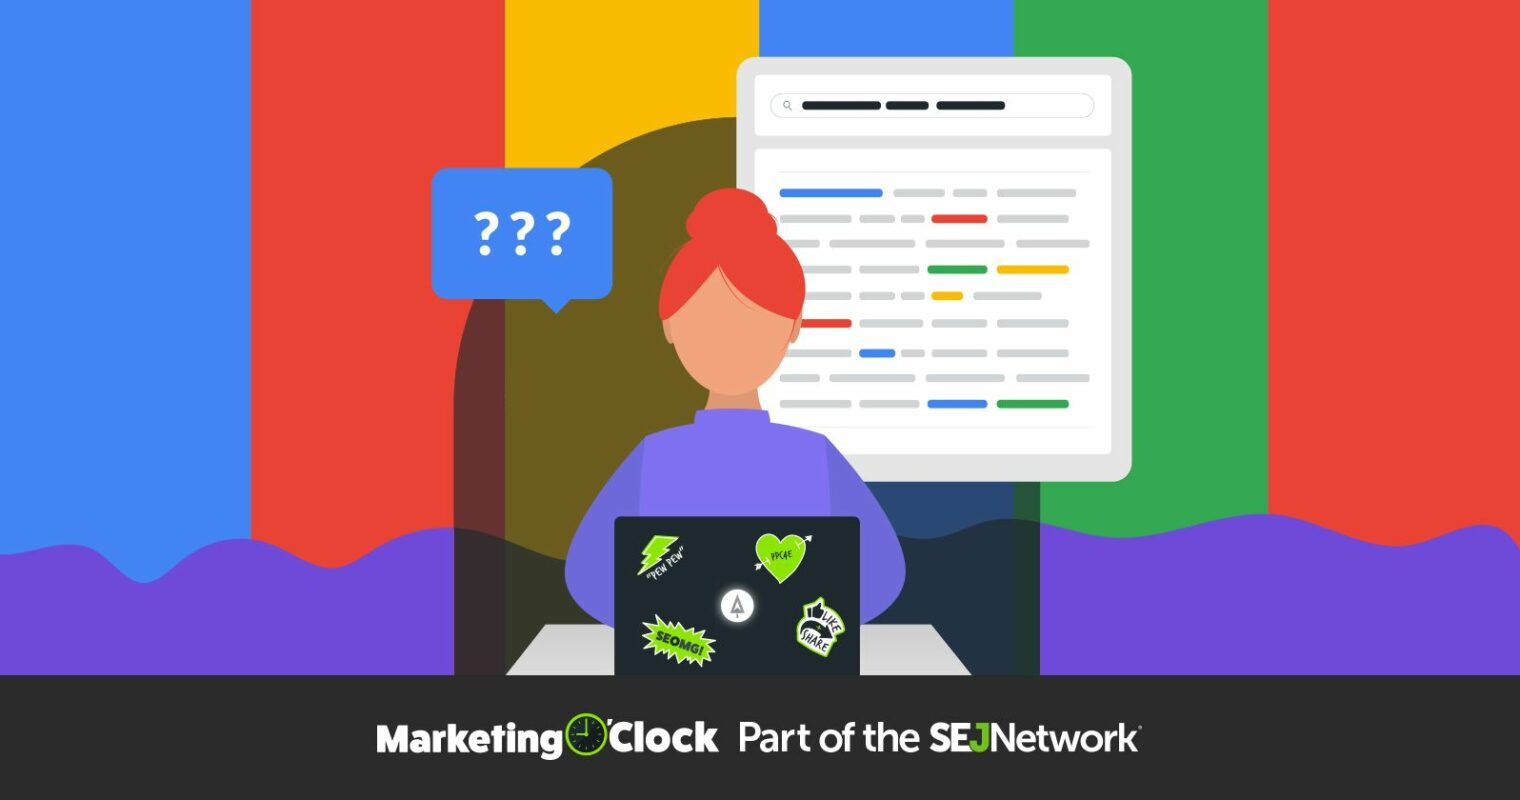 Google Announces Passage-Based Ranking & This Week's Digital Marketing News [PODCAST]